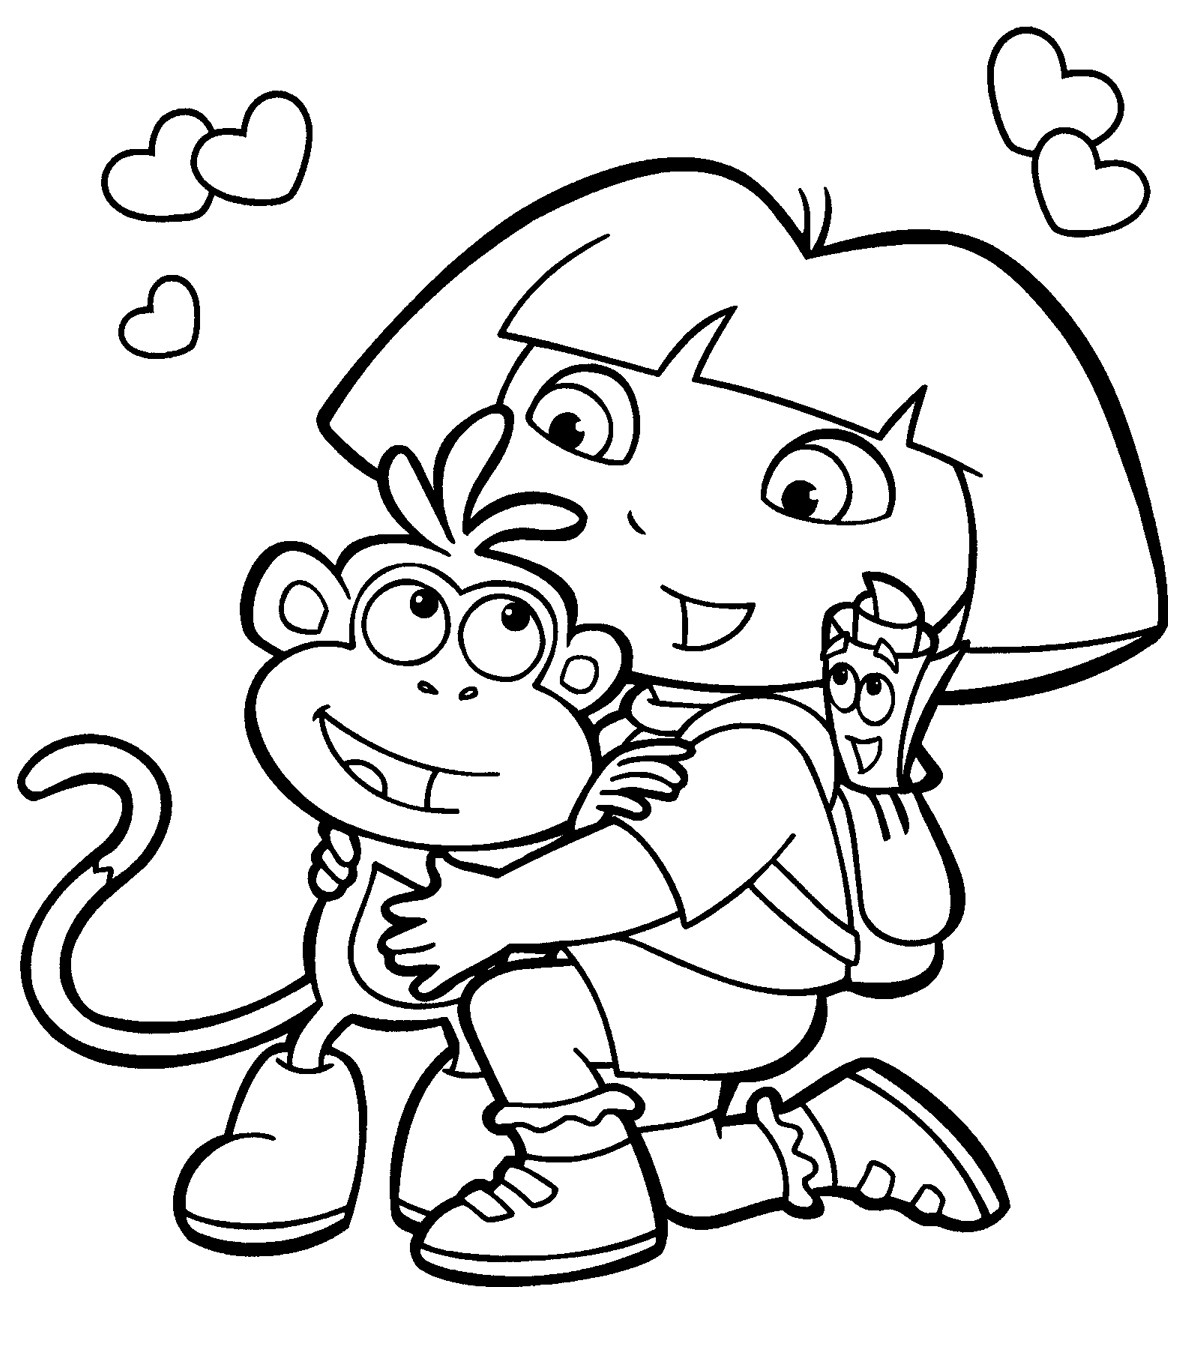 Printable Coloring Pages For Girls Free Printable Coloring Pages For Girls My Little Pony Coloring